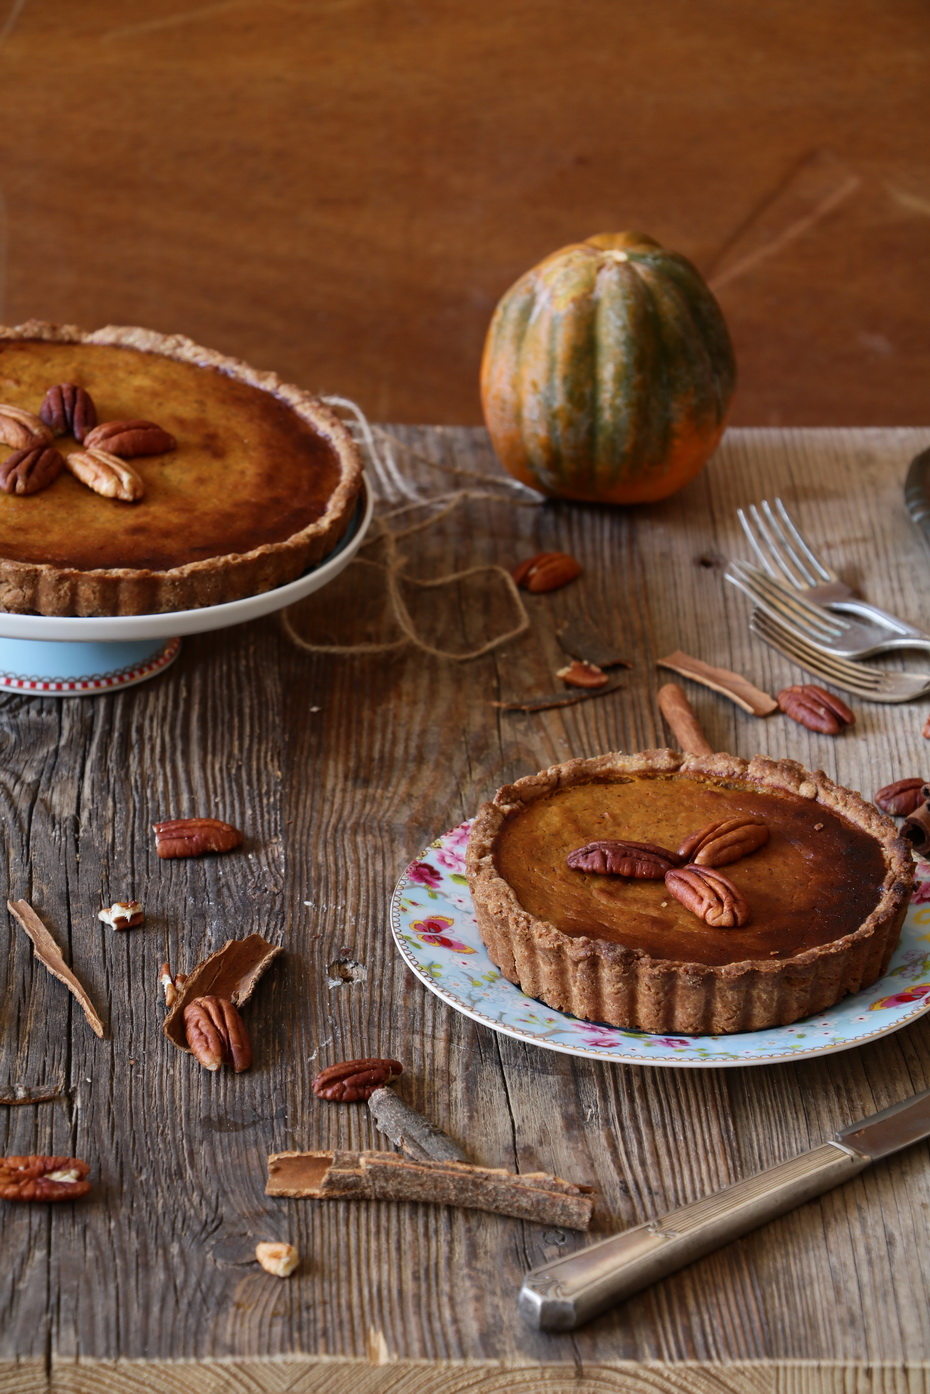 Healthy Festive Whole Wheat Crust Pumpkin Pie